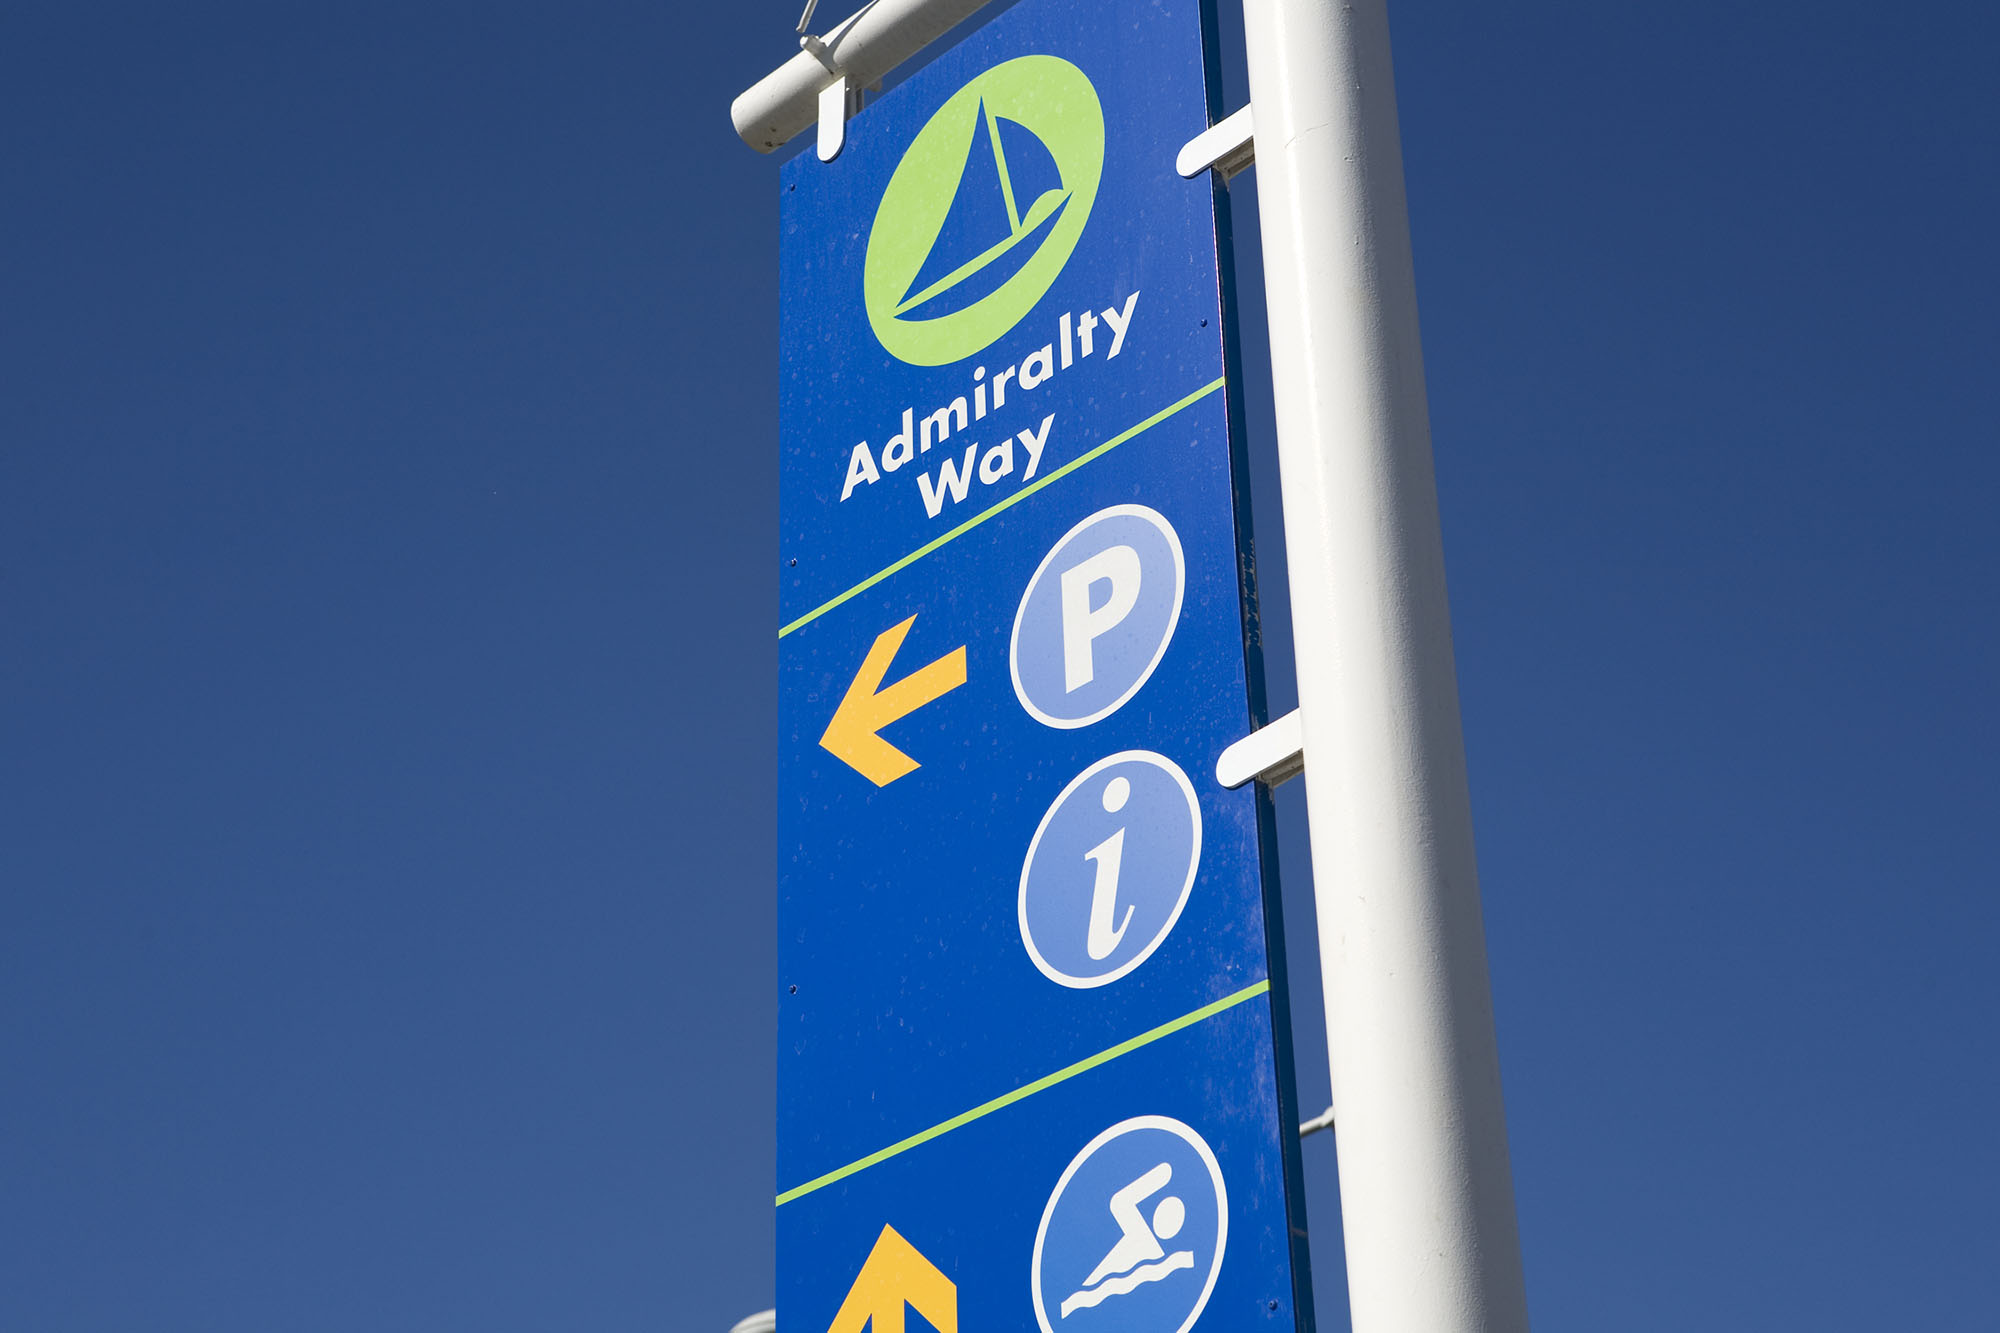 Existing wayfinding sign in Marina del Rey.